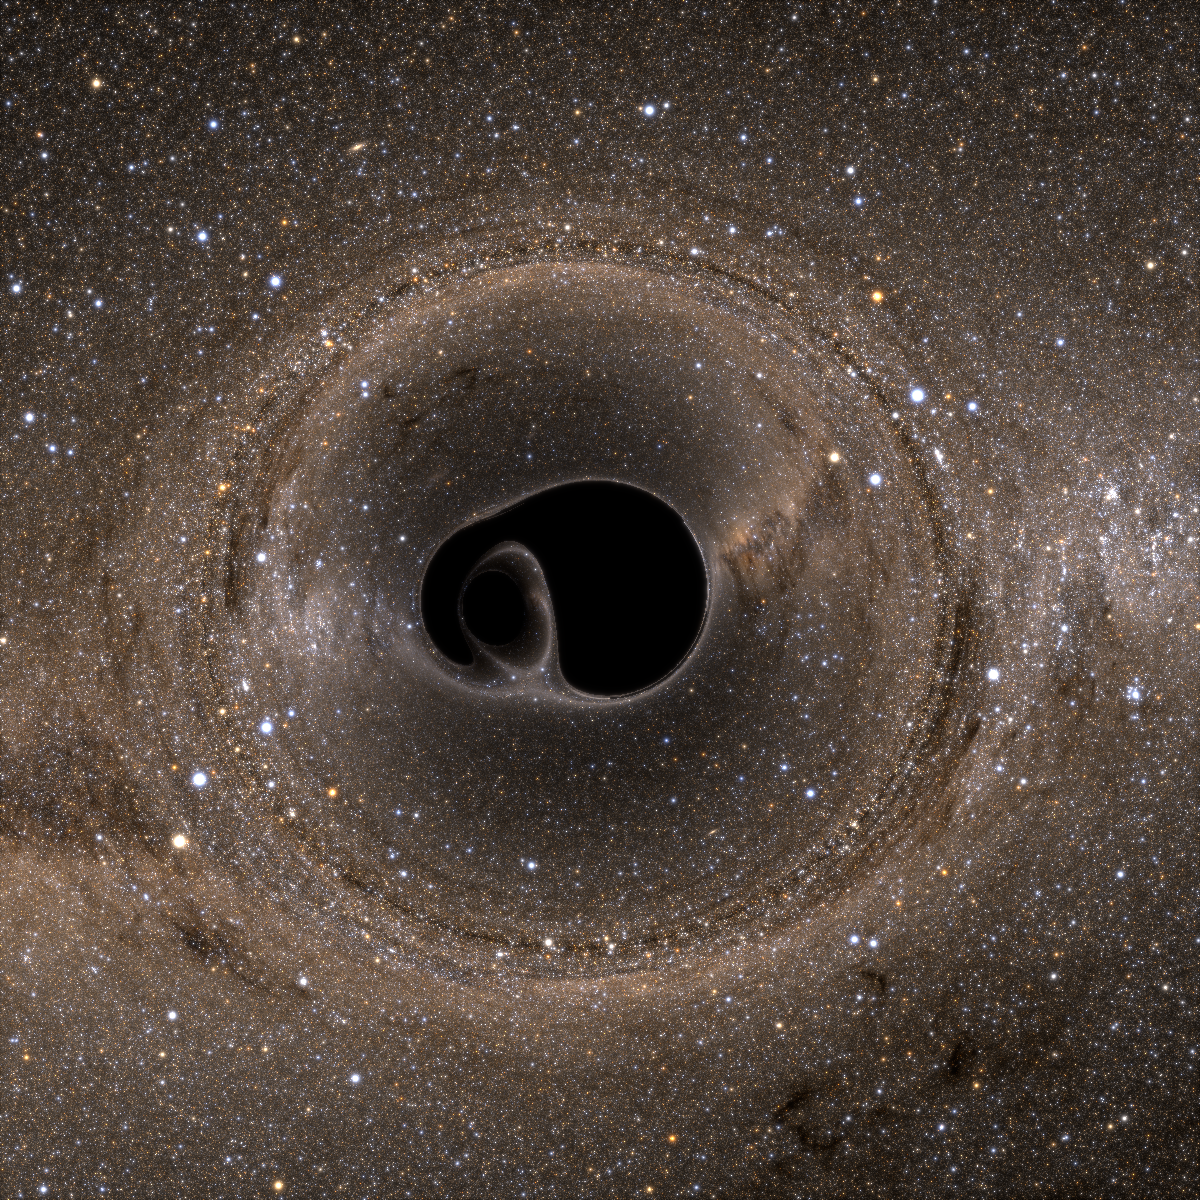 New Simulation Offers Stunning Images of Black Hole Merger